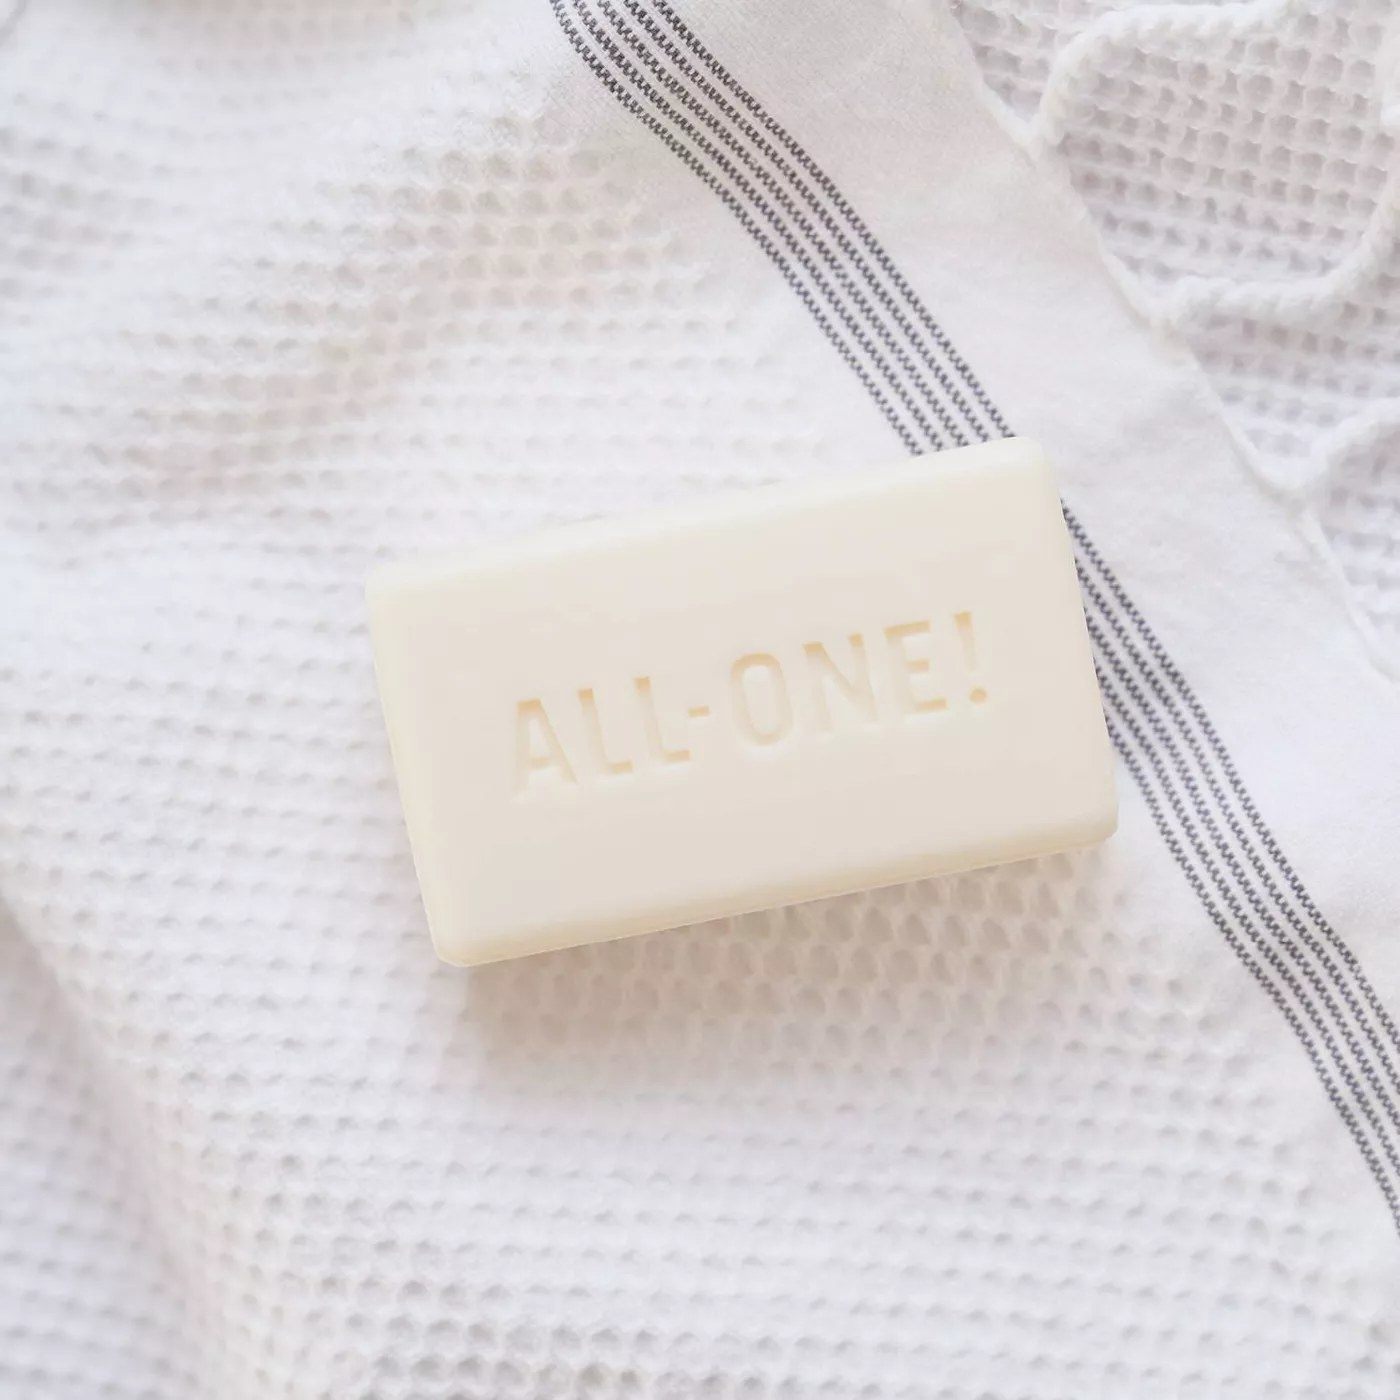 """Dr. Bronner's bar soap with """"ALL-ONE!"""" carved into the side"""